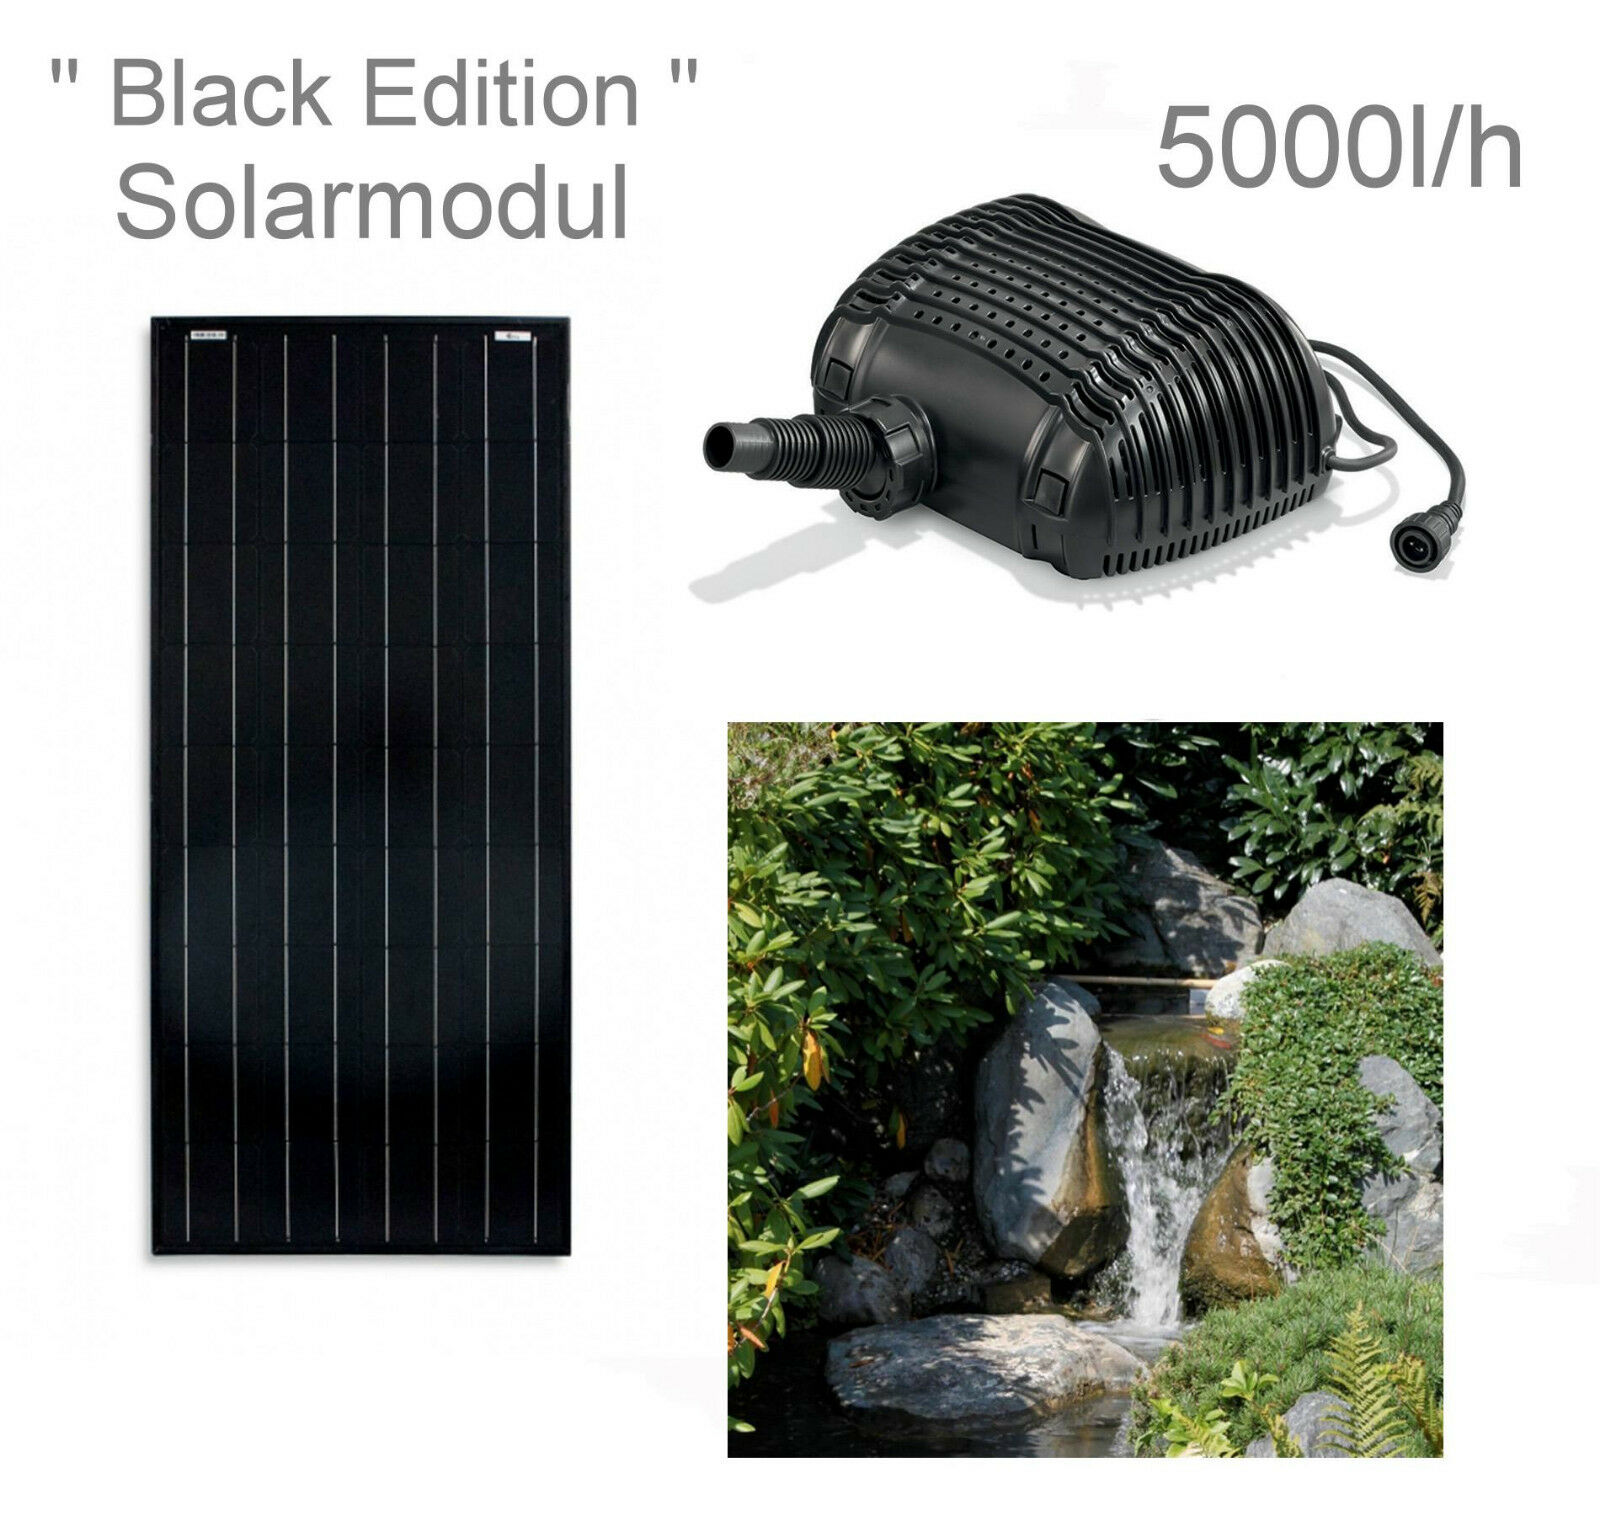 100w solar bachlaufpumpe teichpumpe solarpumpe gartenteichpumpe lugano teich eur 255 00. Black Bedroom Furniture Sets. Home Design Ideas